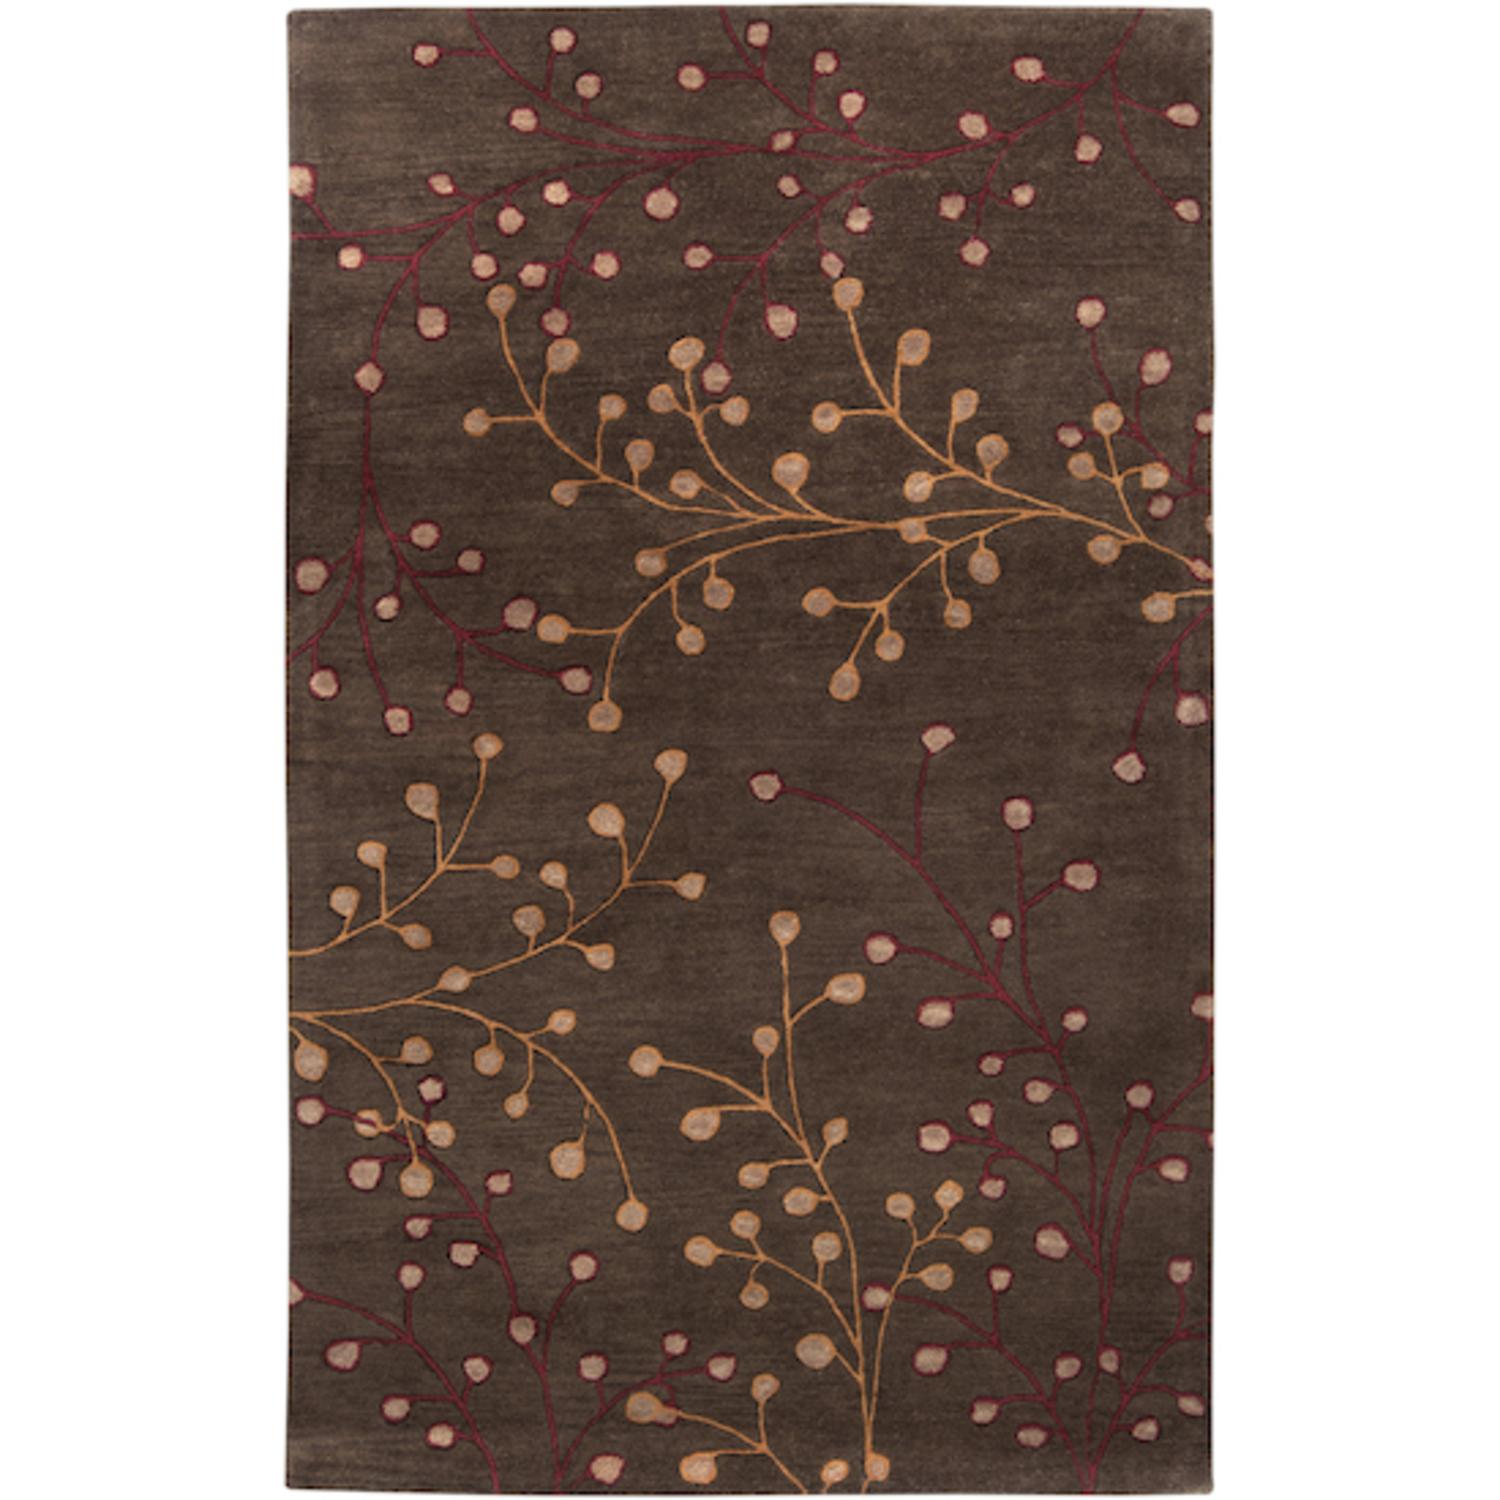 5' x 8' Fair Enoki Wine Red and Coffee Bean Brown Wool Area Throw Rug